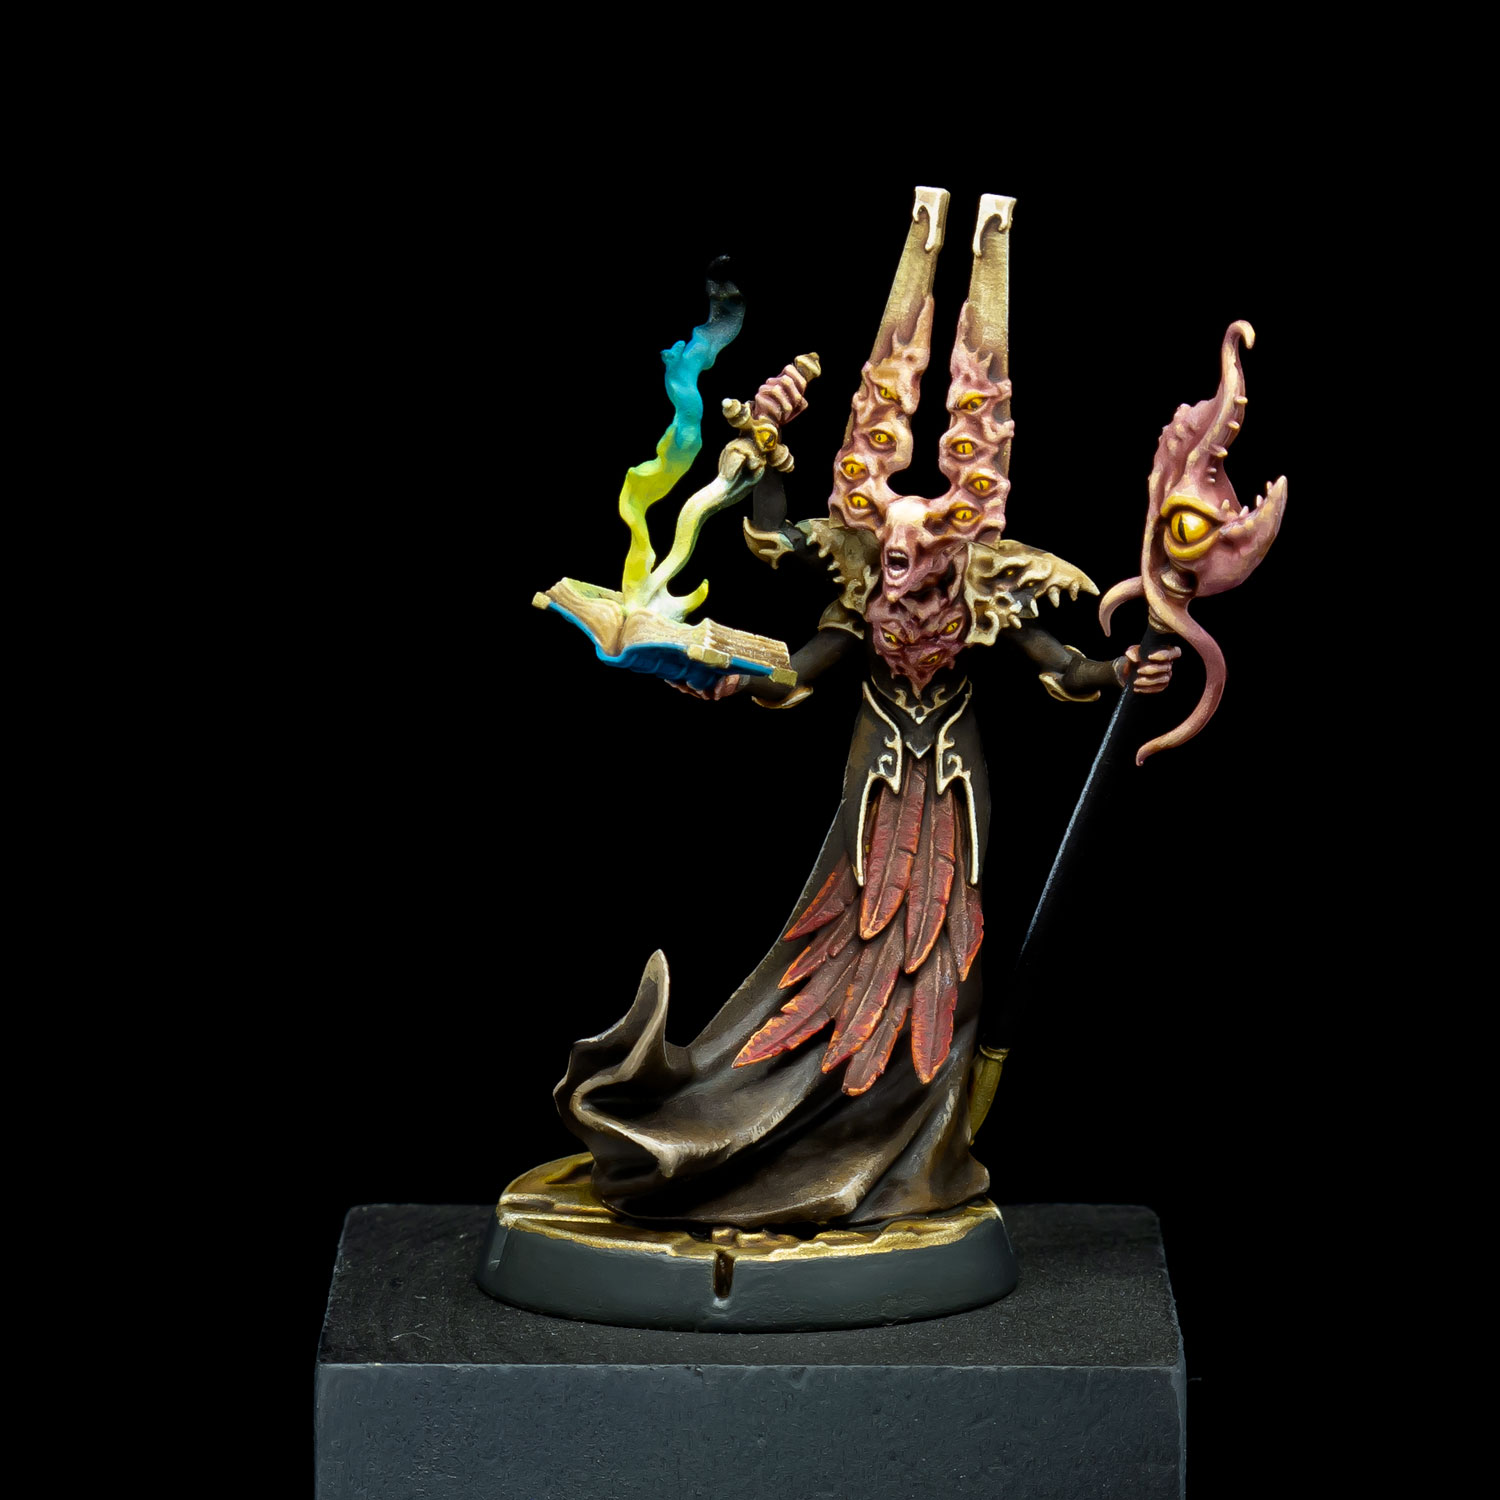 Warhammer Quest: Silver Tower - The Gaunt Summoner